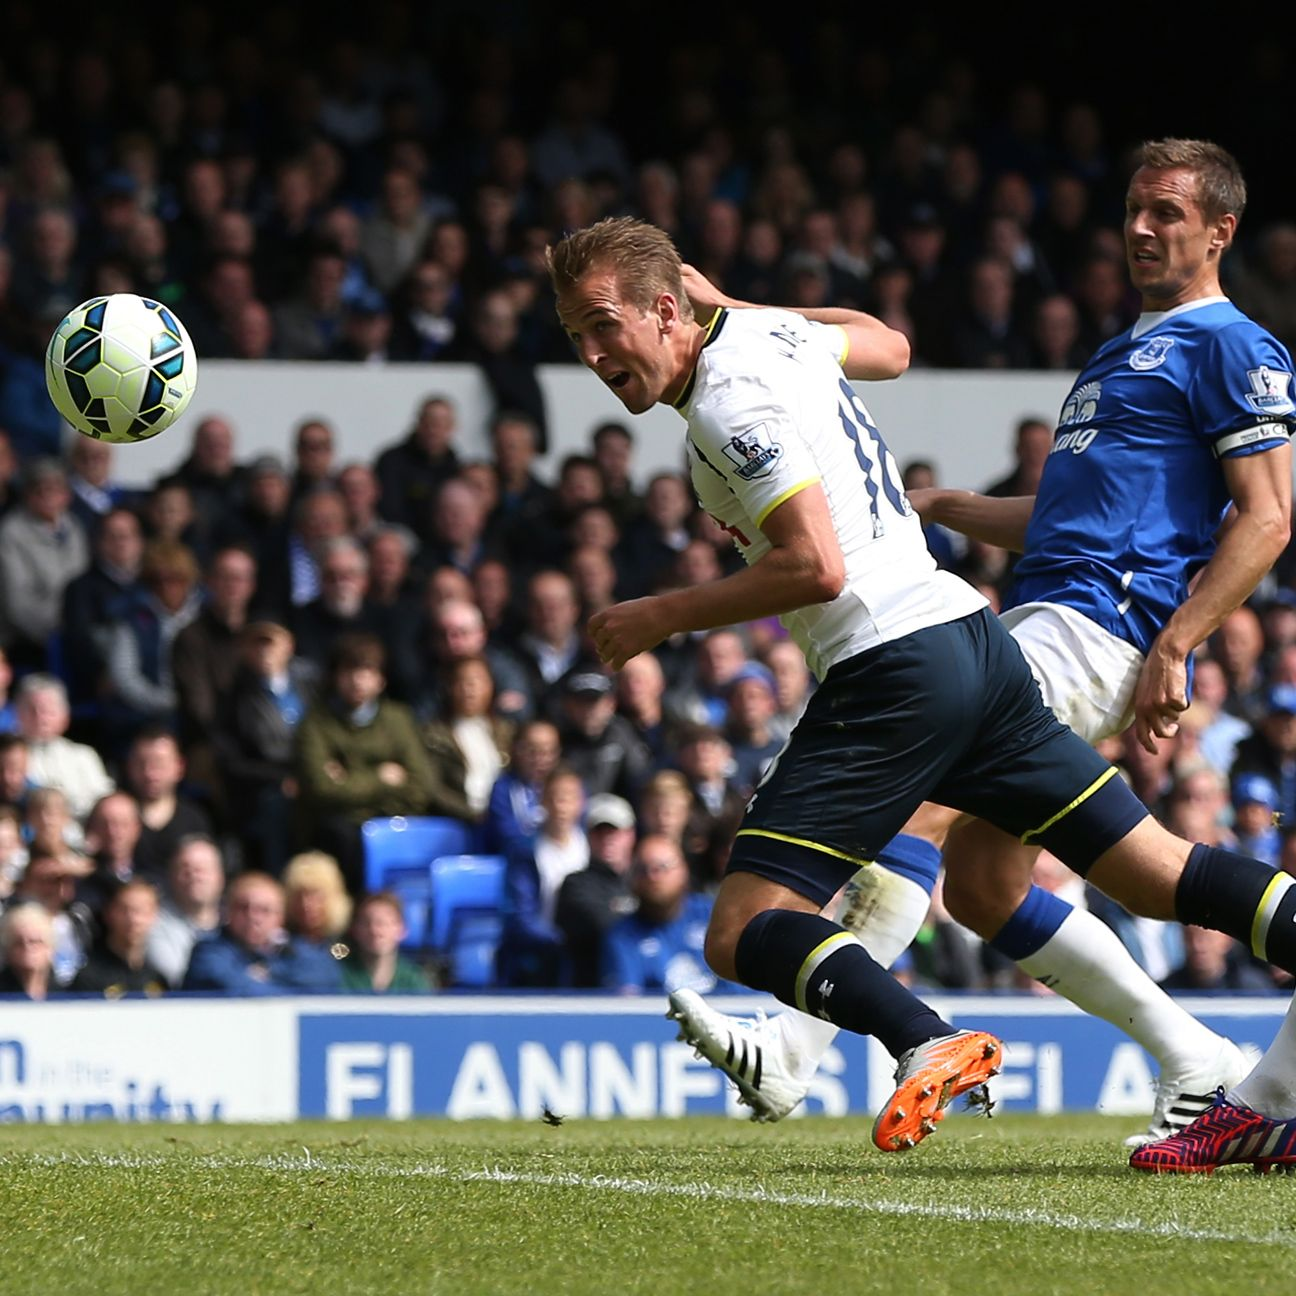 Harry Kane scored in Tottenham's finale to end 2014-15 with 21 Premier League goals.